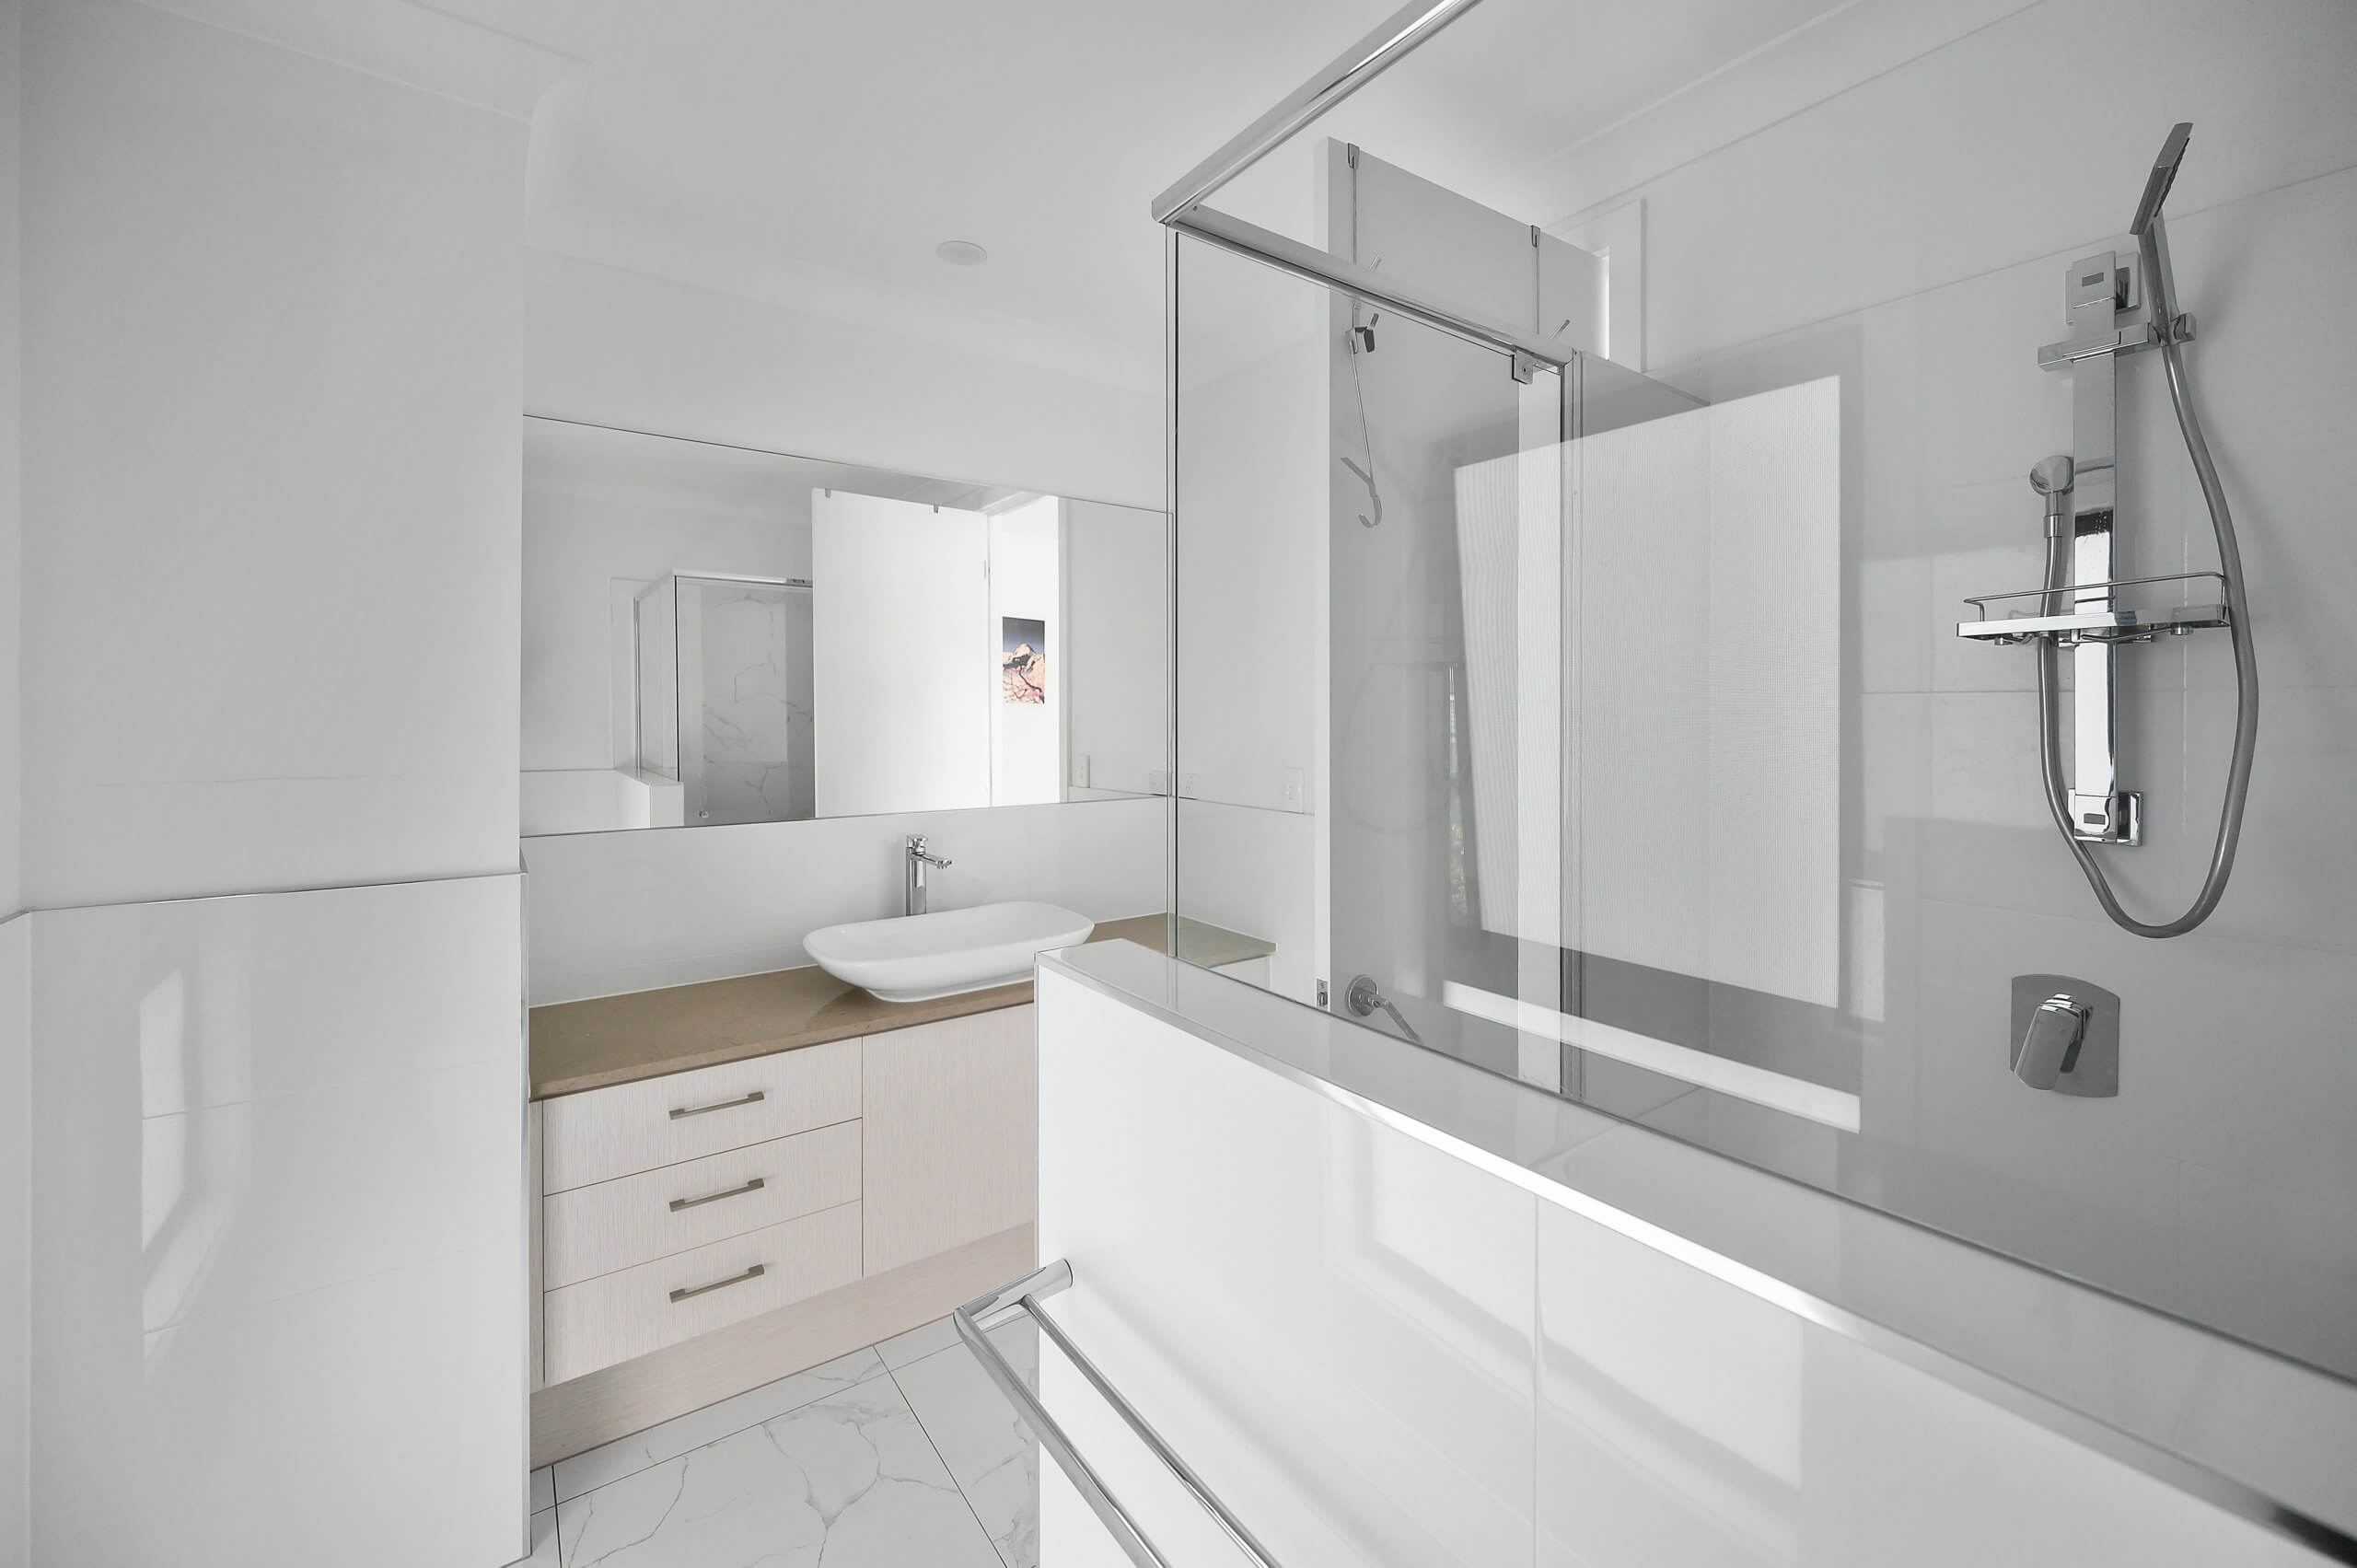 Bathroom remodel ideas for 2021